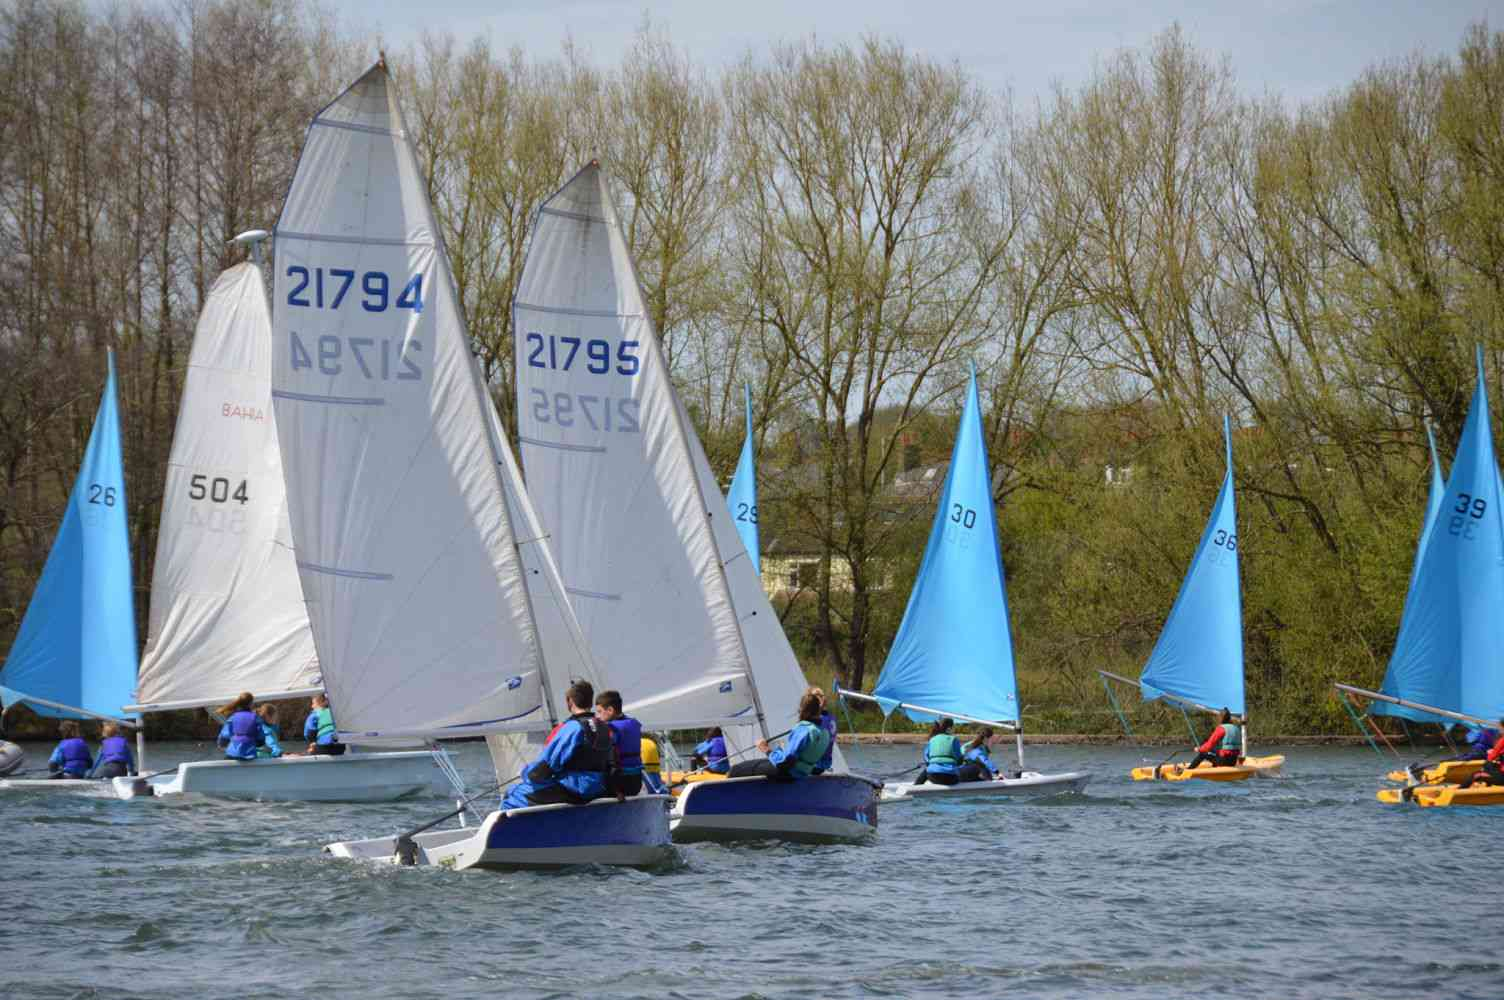 RYA Performance Sailing